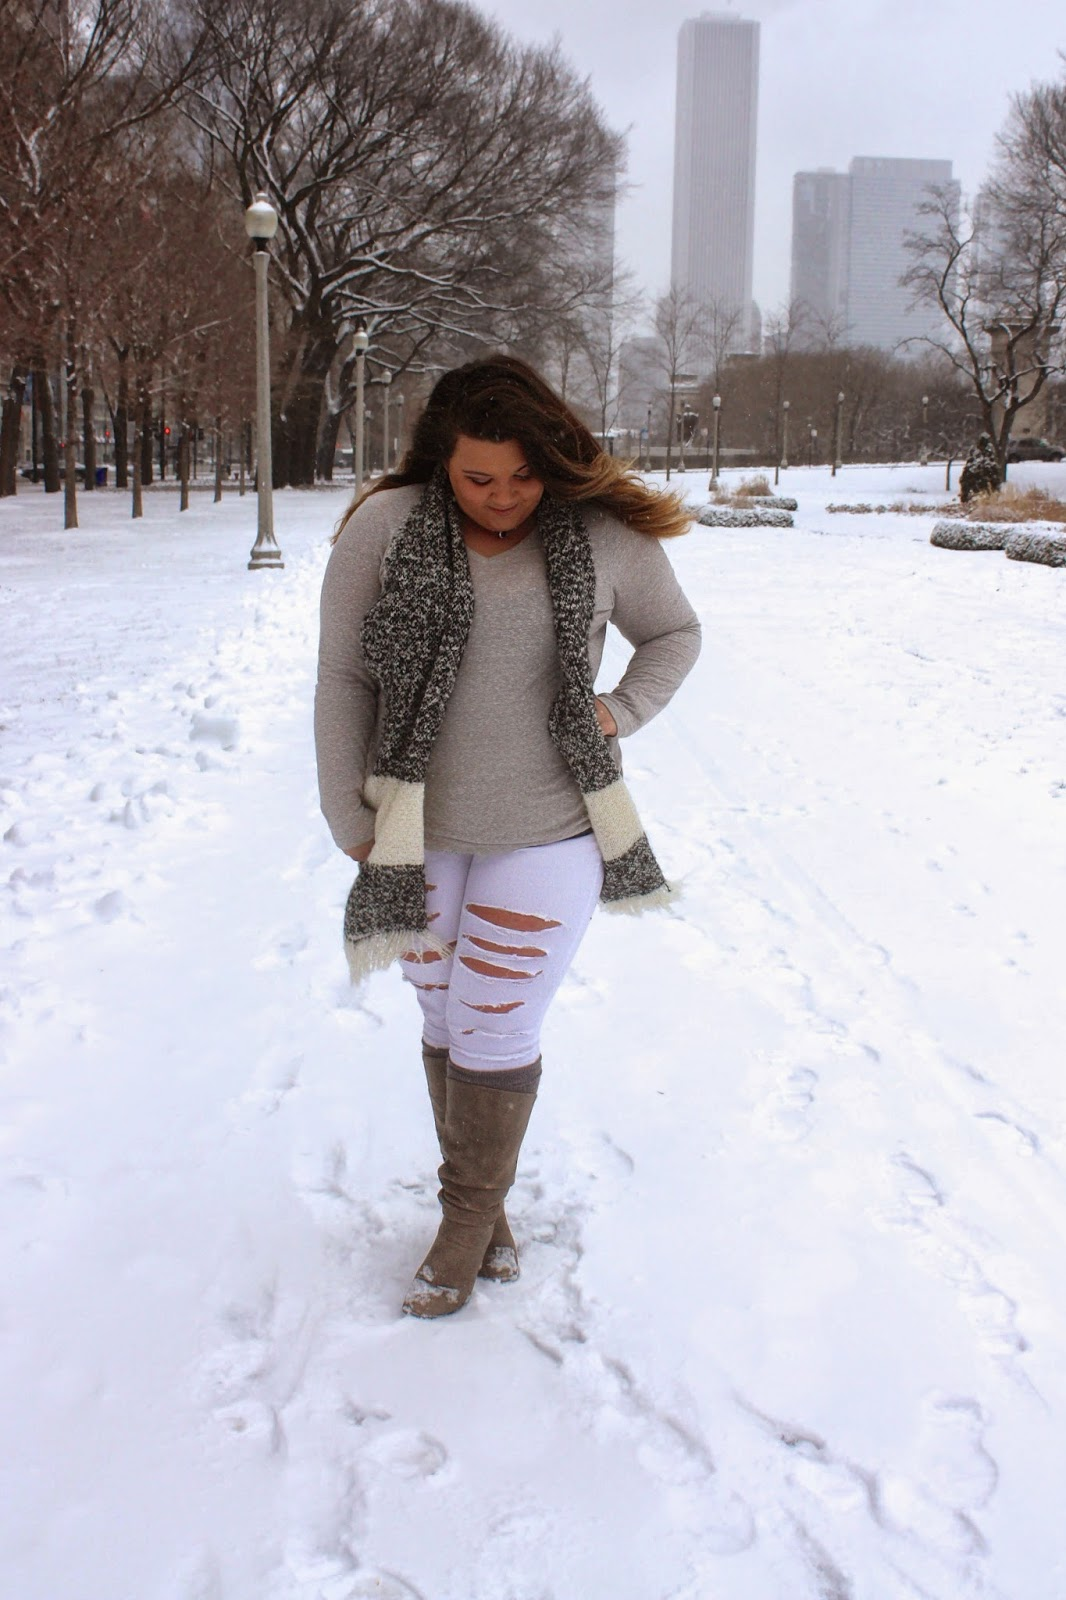 Natalie Craig, chicago, natalie in the city, plus size fashion blogger, curvy girls, fatshion, winter fashion 2015, what to wear, ootd, winter whites, snow day, what to wear snow, bbw, scarves, DIY destroyed denim, white denim, how to cut denim, ombre, thicks girls, knee high socks, how to wear a scarf, Forever 21, shopcade, chicago bloggers network, grant park